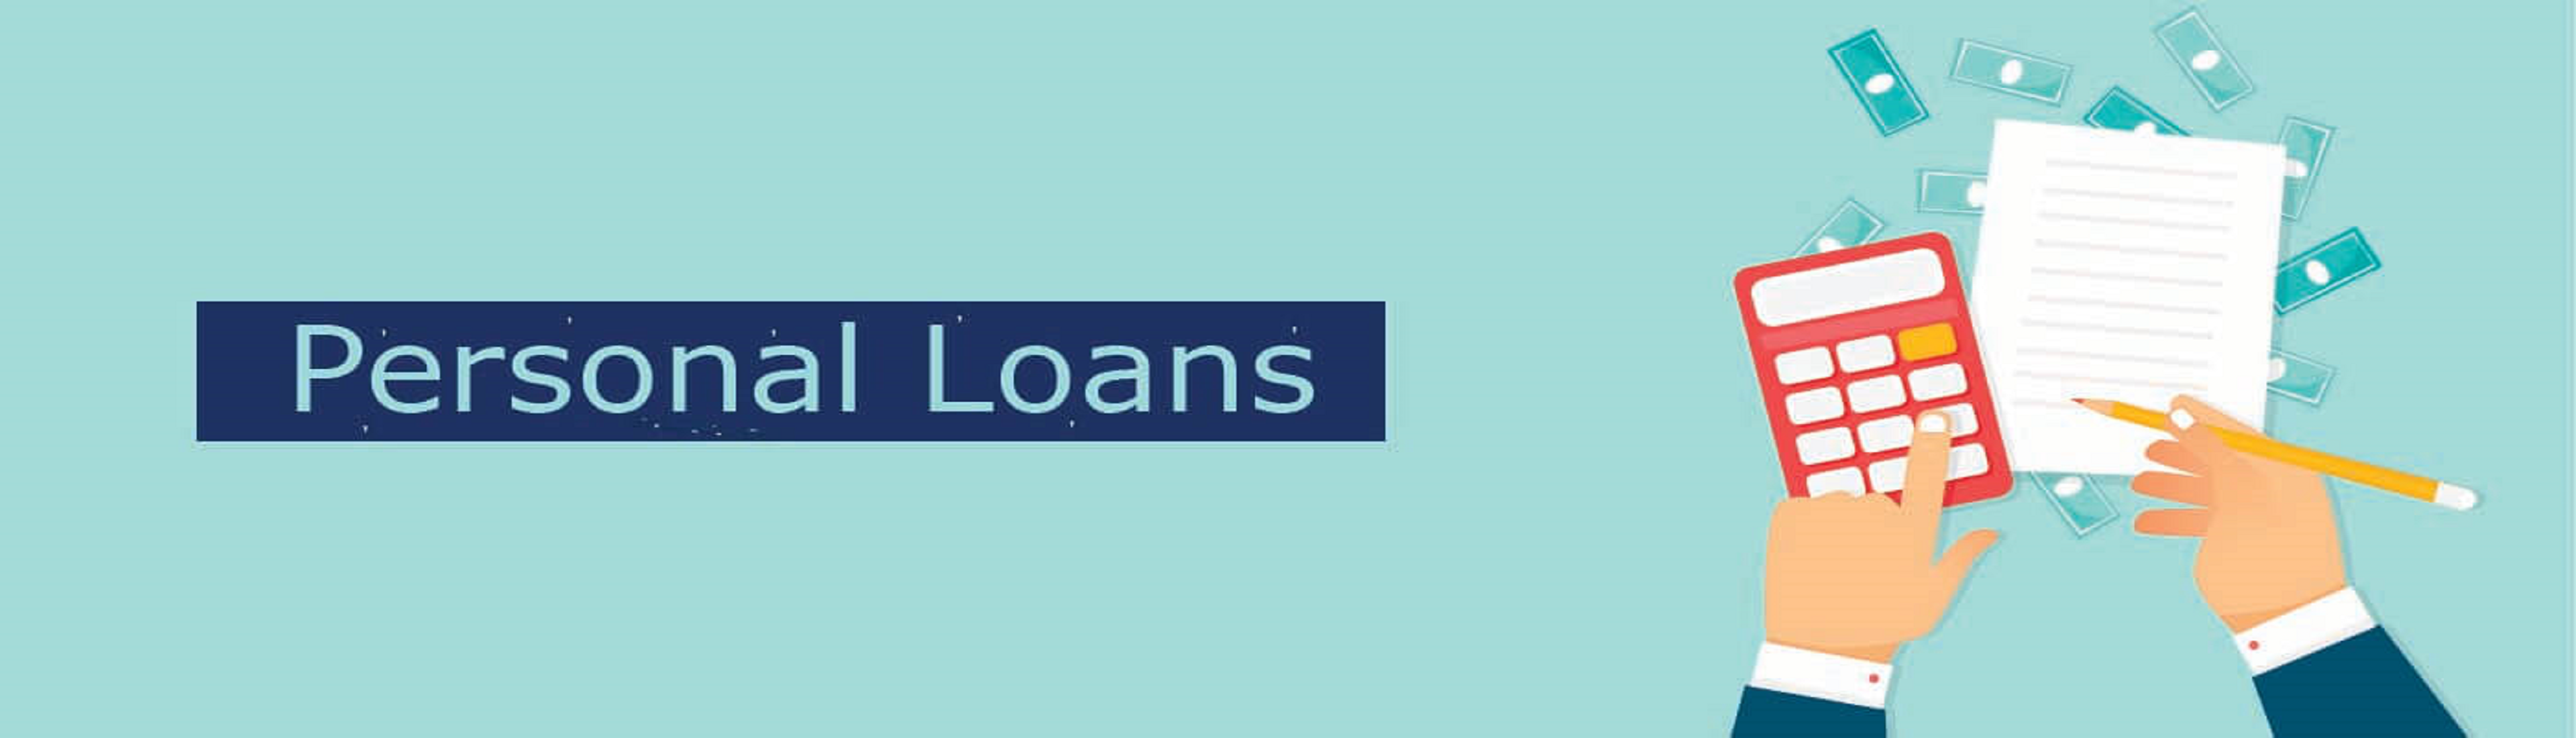 full size personal-loans-banner